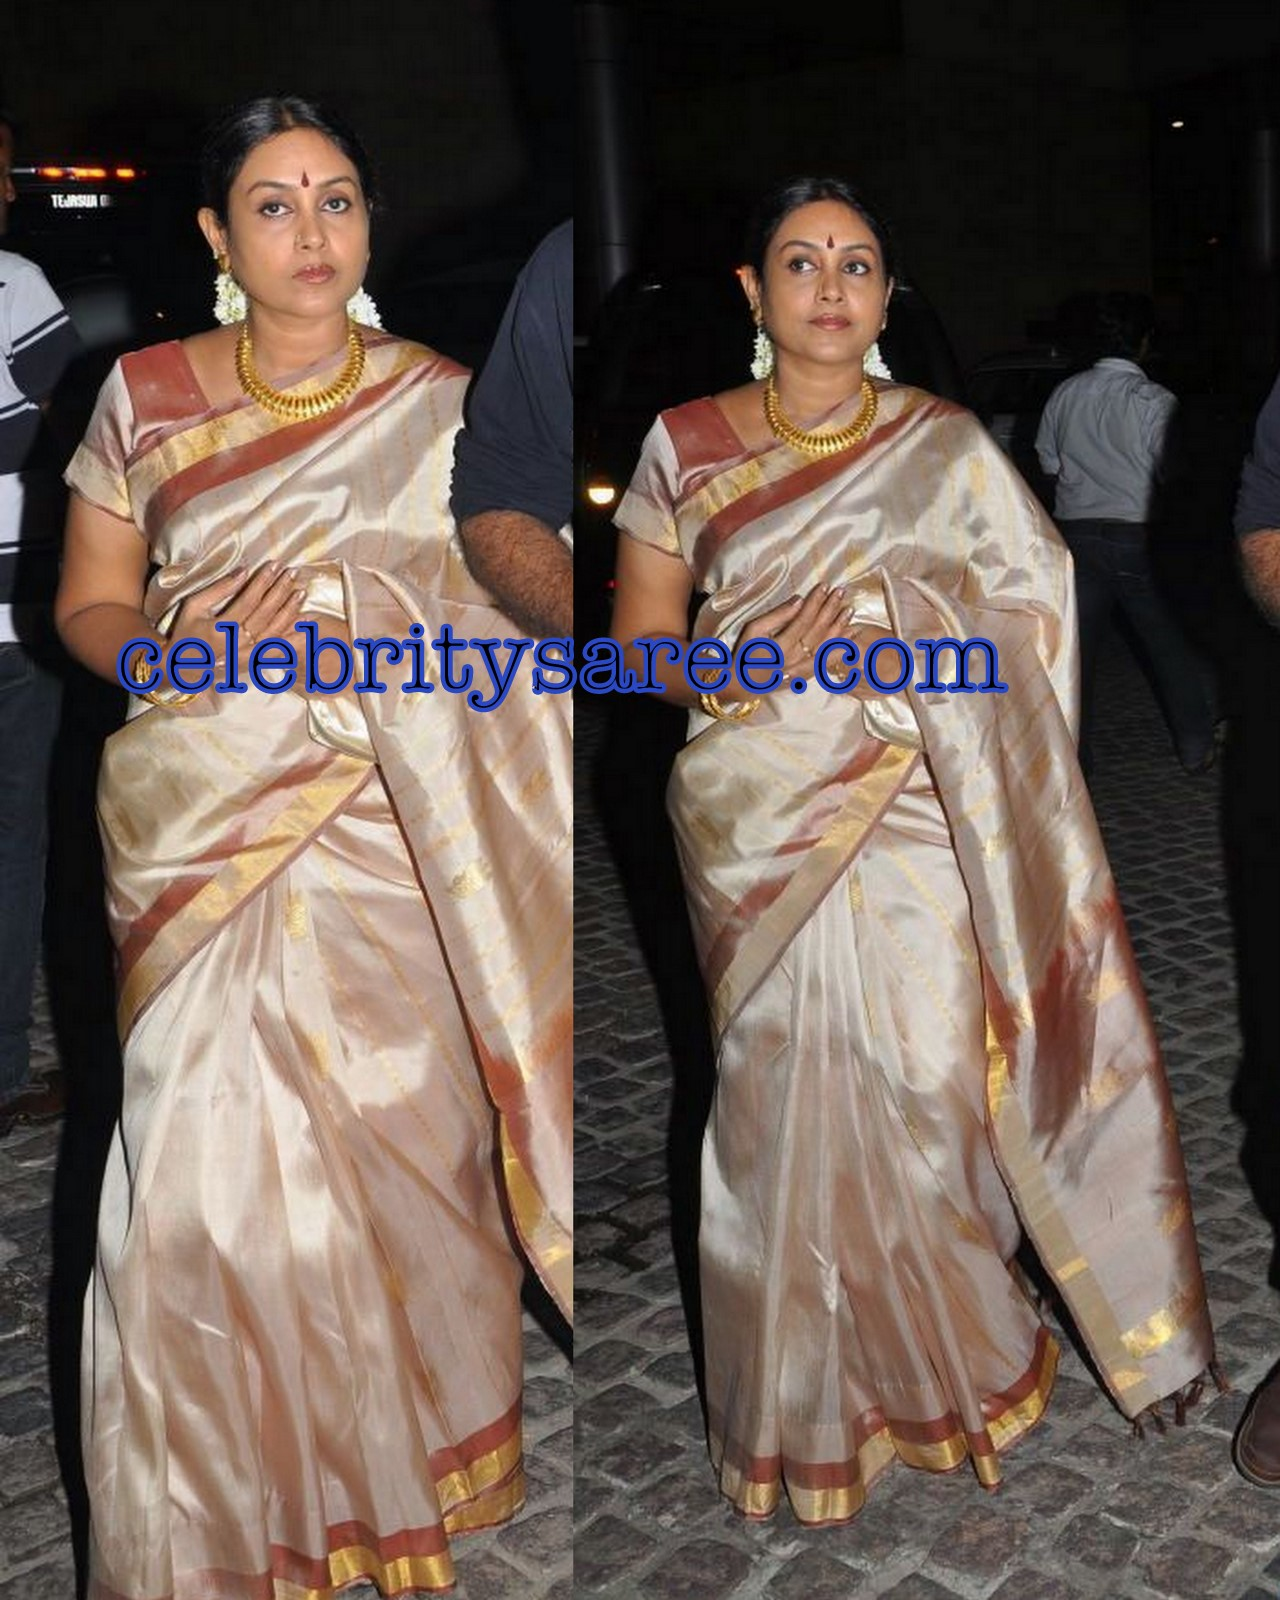 Ponvannan: Saranya Ponnavan In Traditional Silk Saree At 58th Film